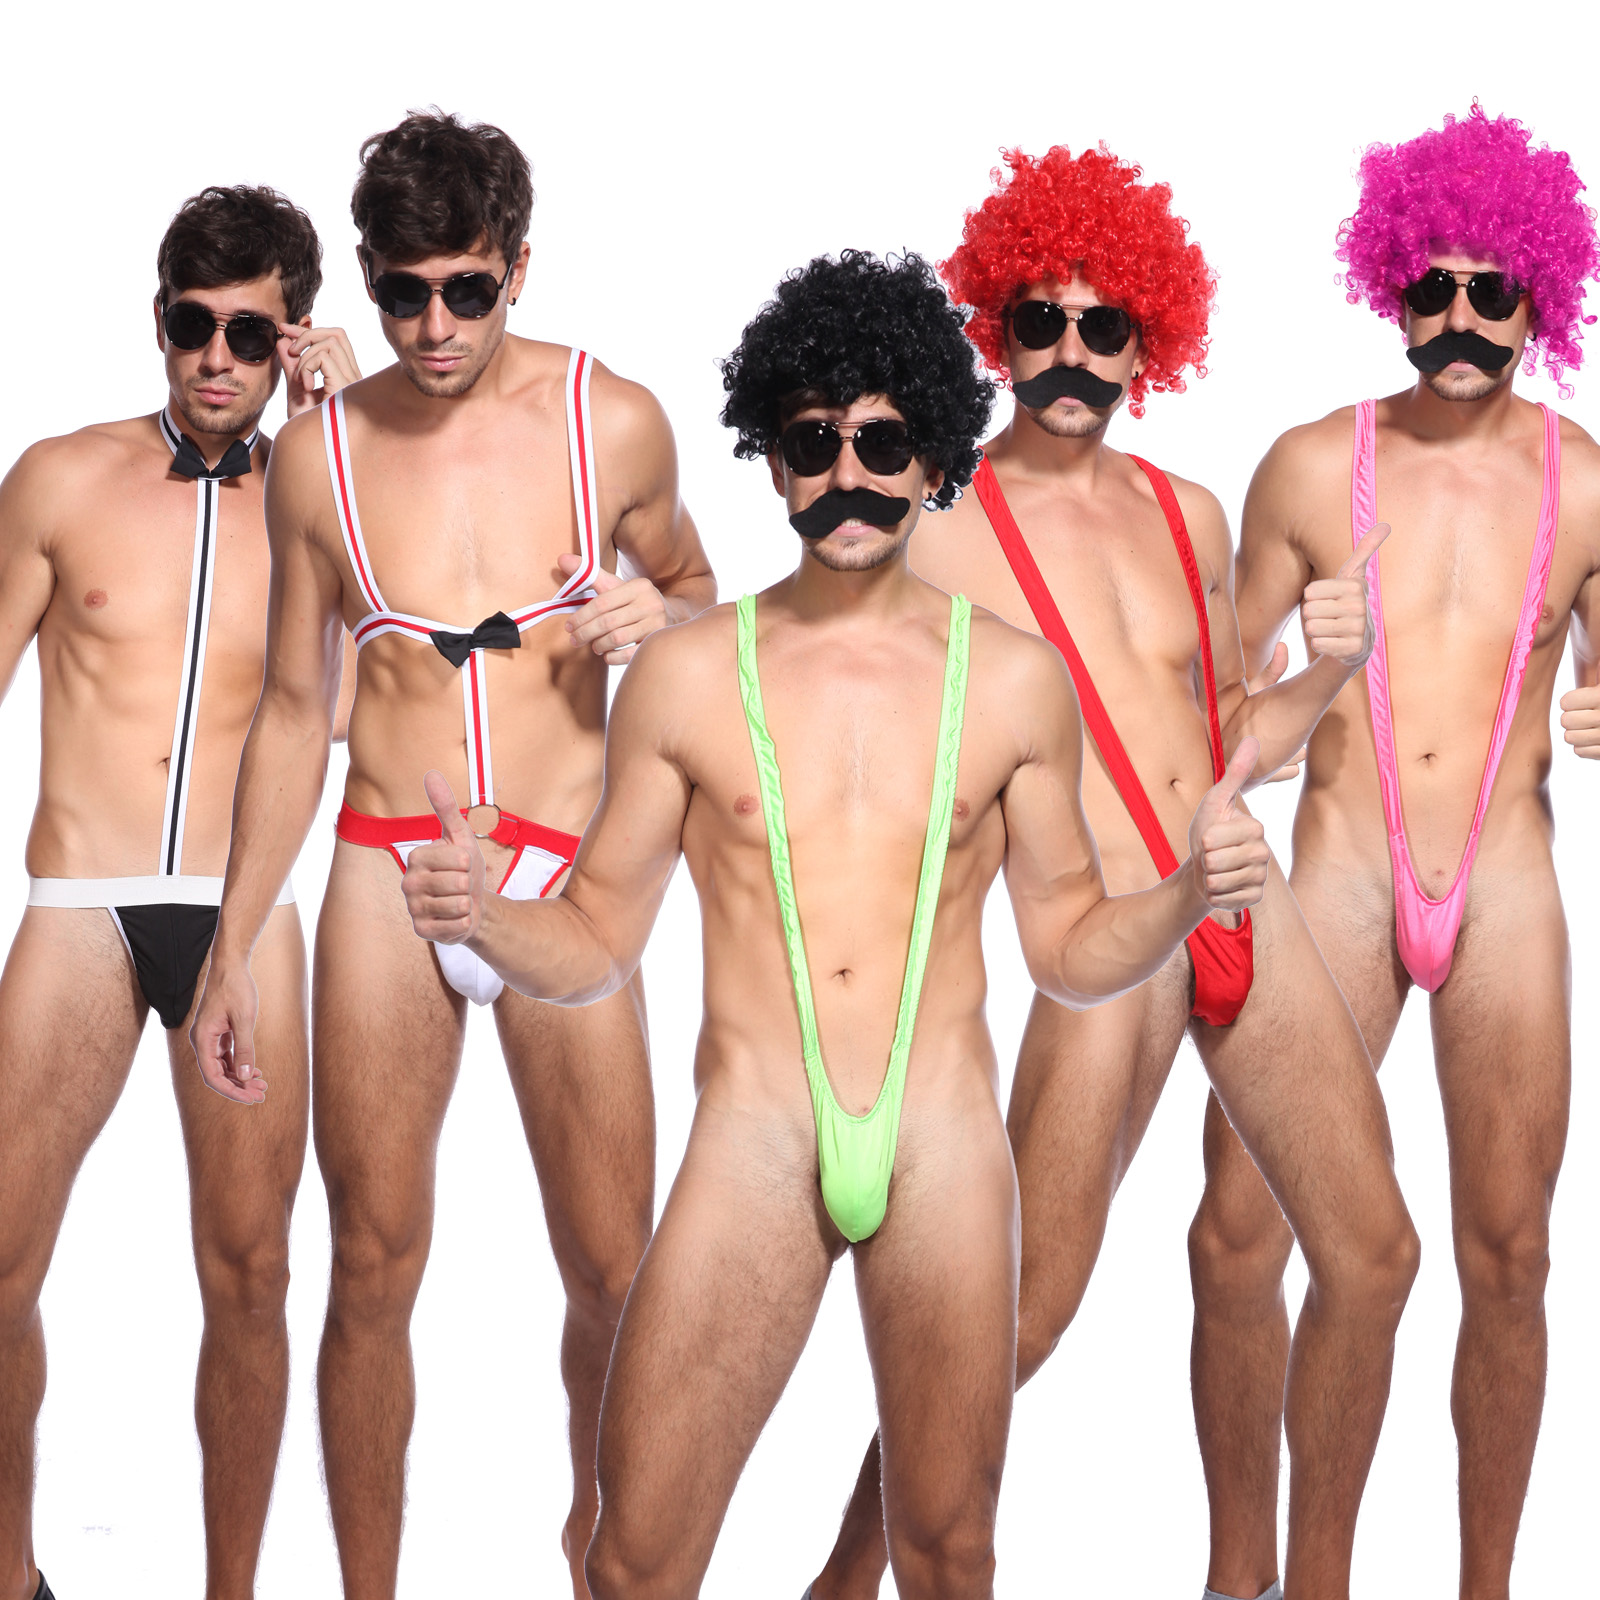 3a4e531d074fb Sexy Borat Mankini Costume Swimsuit Mens Swimwear Thong Beach Stags Hens  Bucks